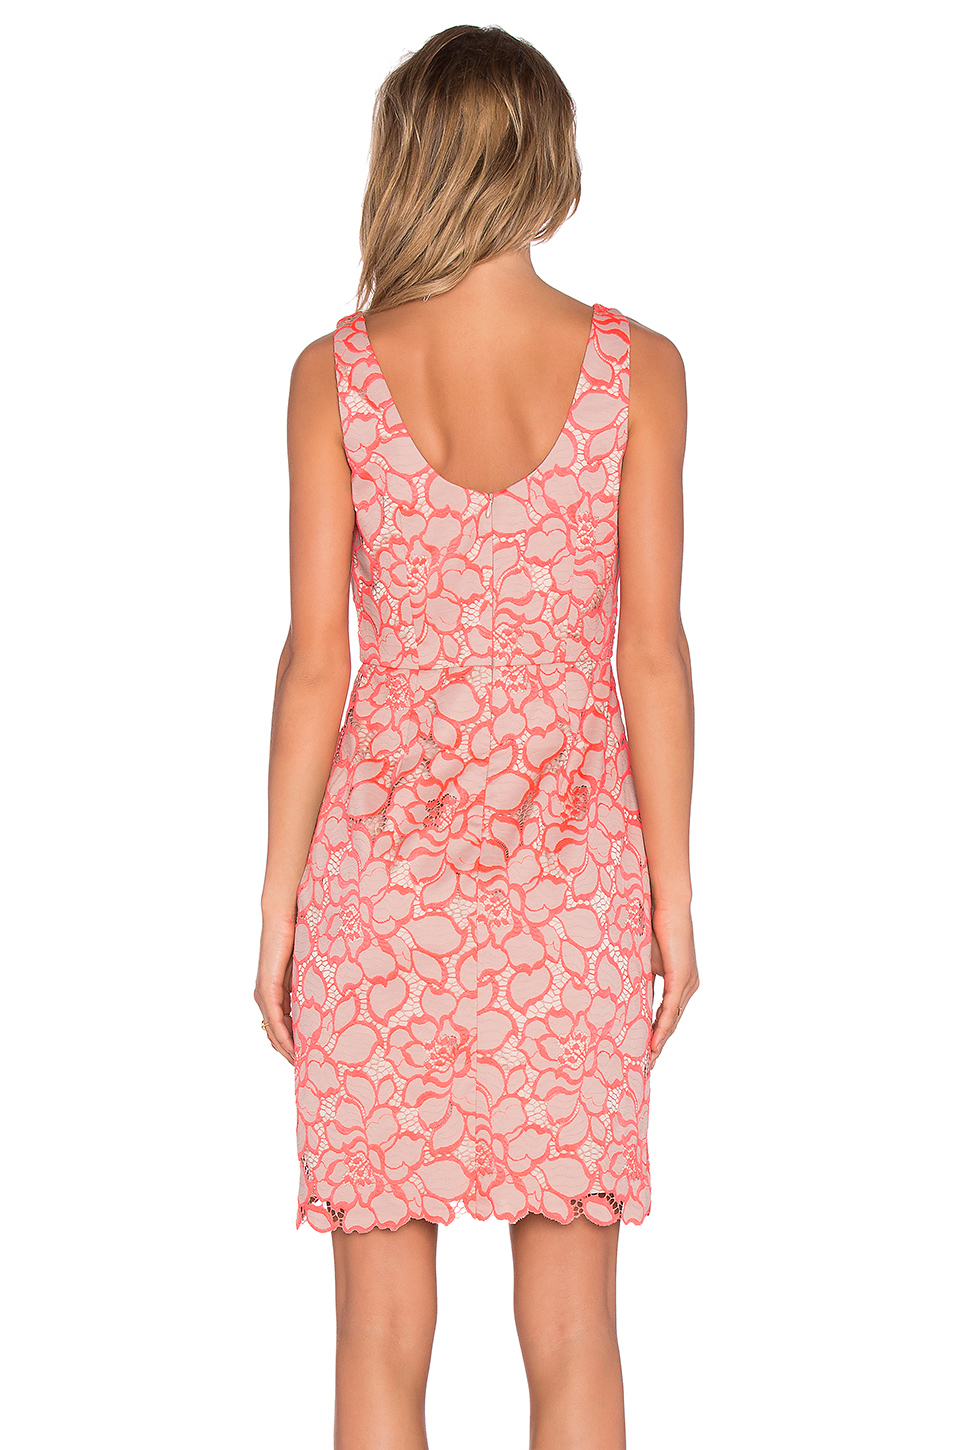 Lyst - Trina Turk Kruze Leaf-Print Mini Dress In Pink-6340